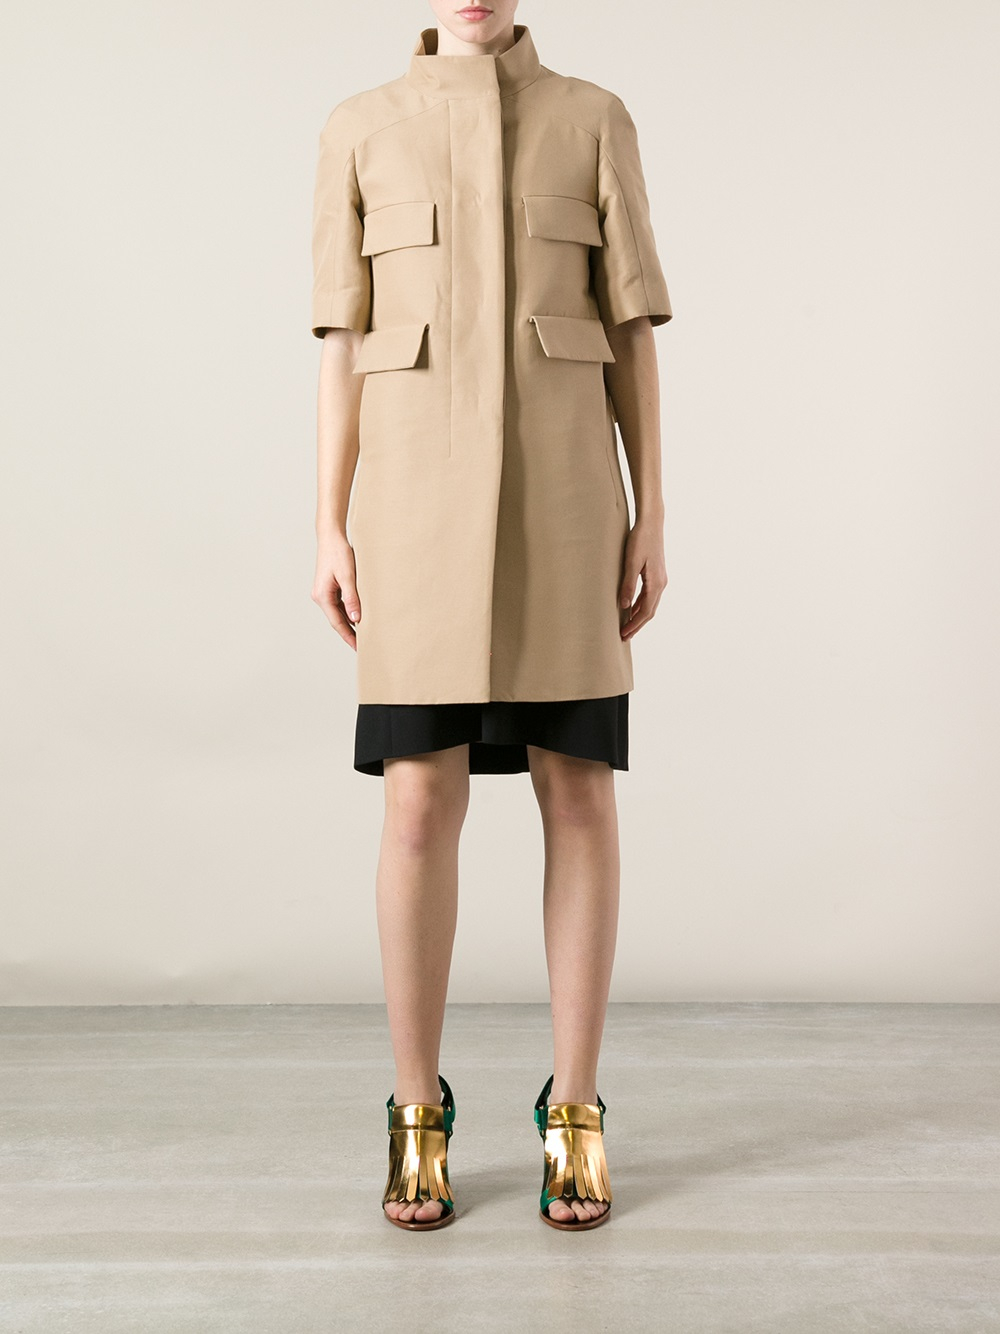 Marni Short Sleeve Coat in Natural | Lyst